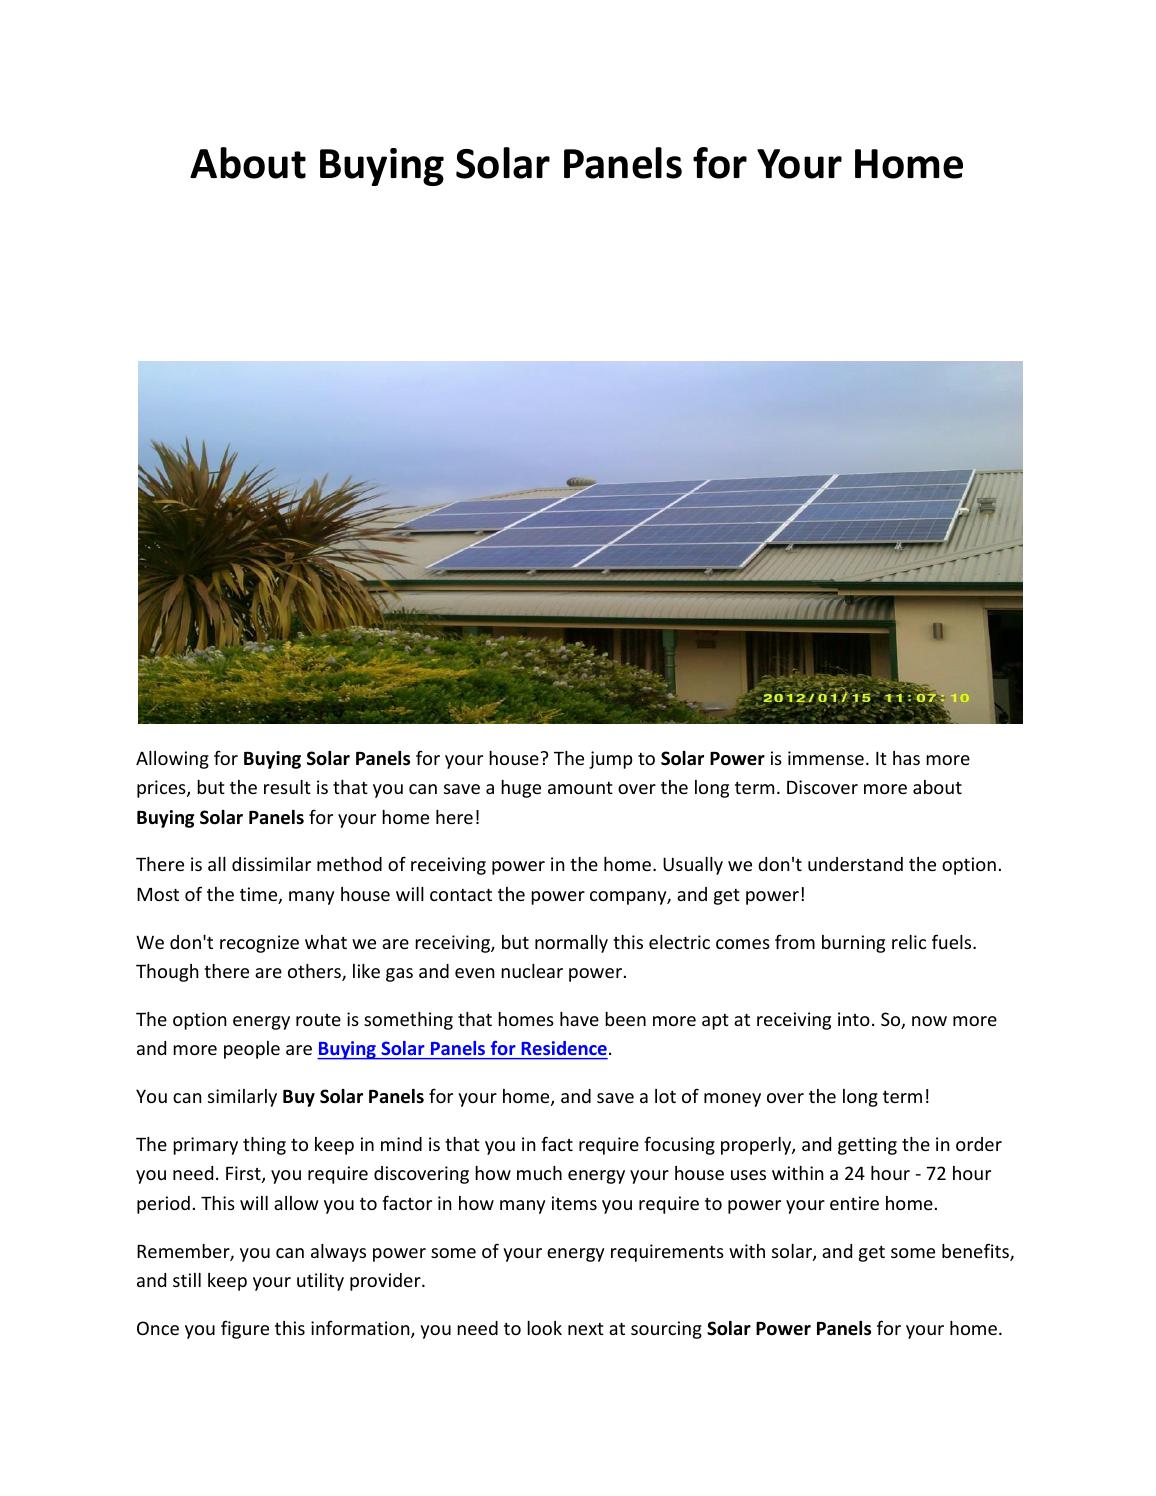 Solar Panels For Your Home >> About Buying Solar Panels For Your Home By Fortunesolar Issuu